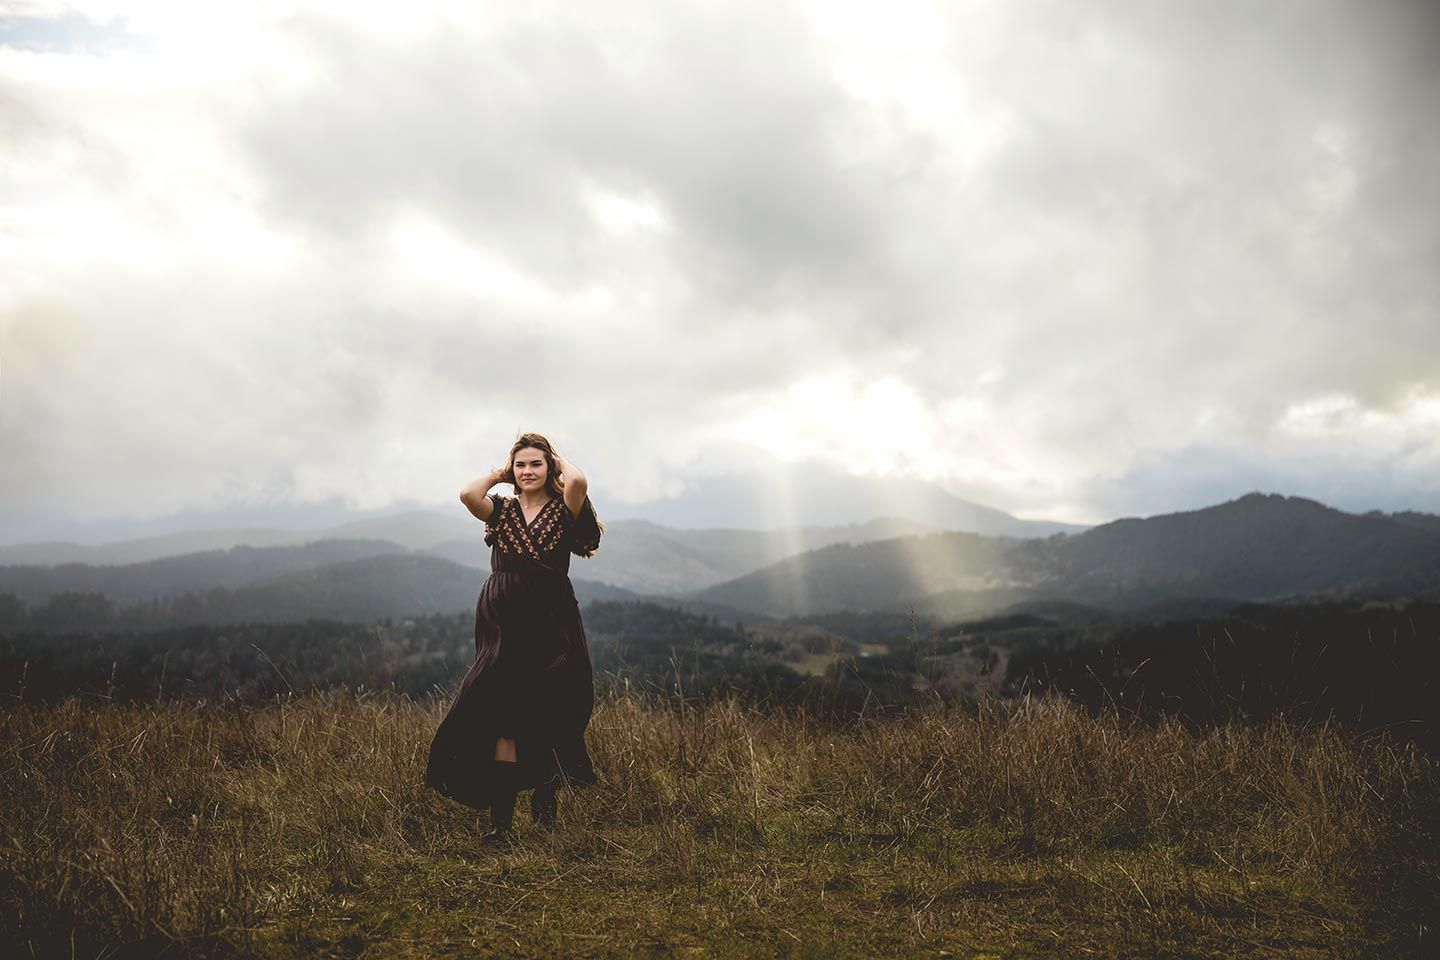 senior girl fixing her hair and walking on a golden grassy hill with mountains and clouds in the background